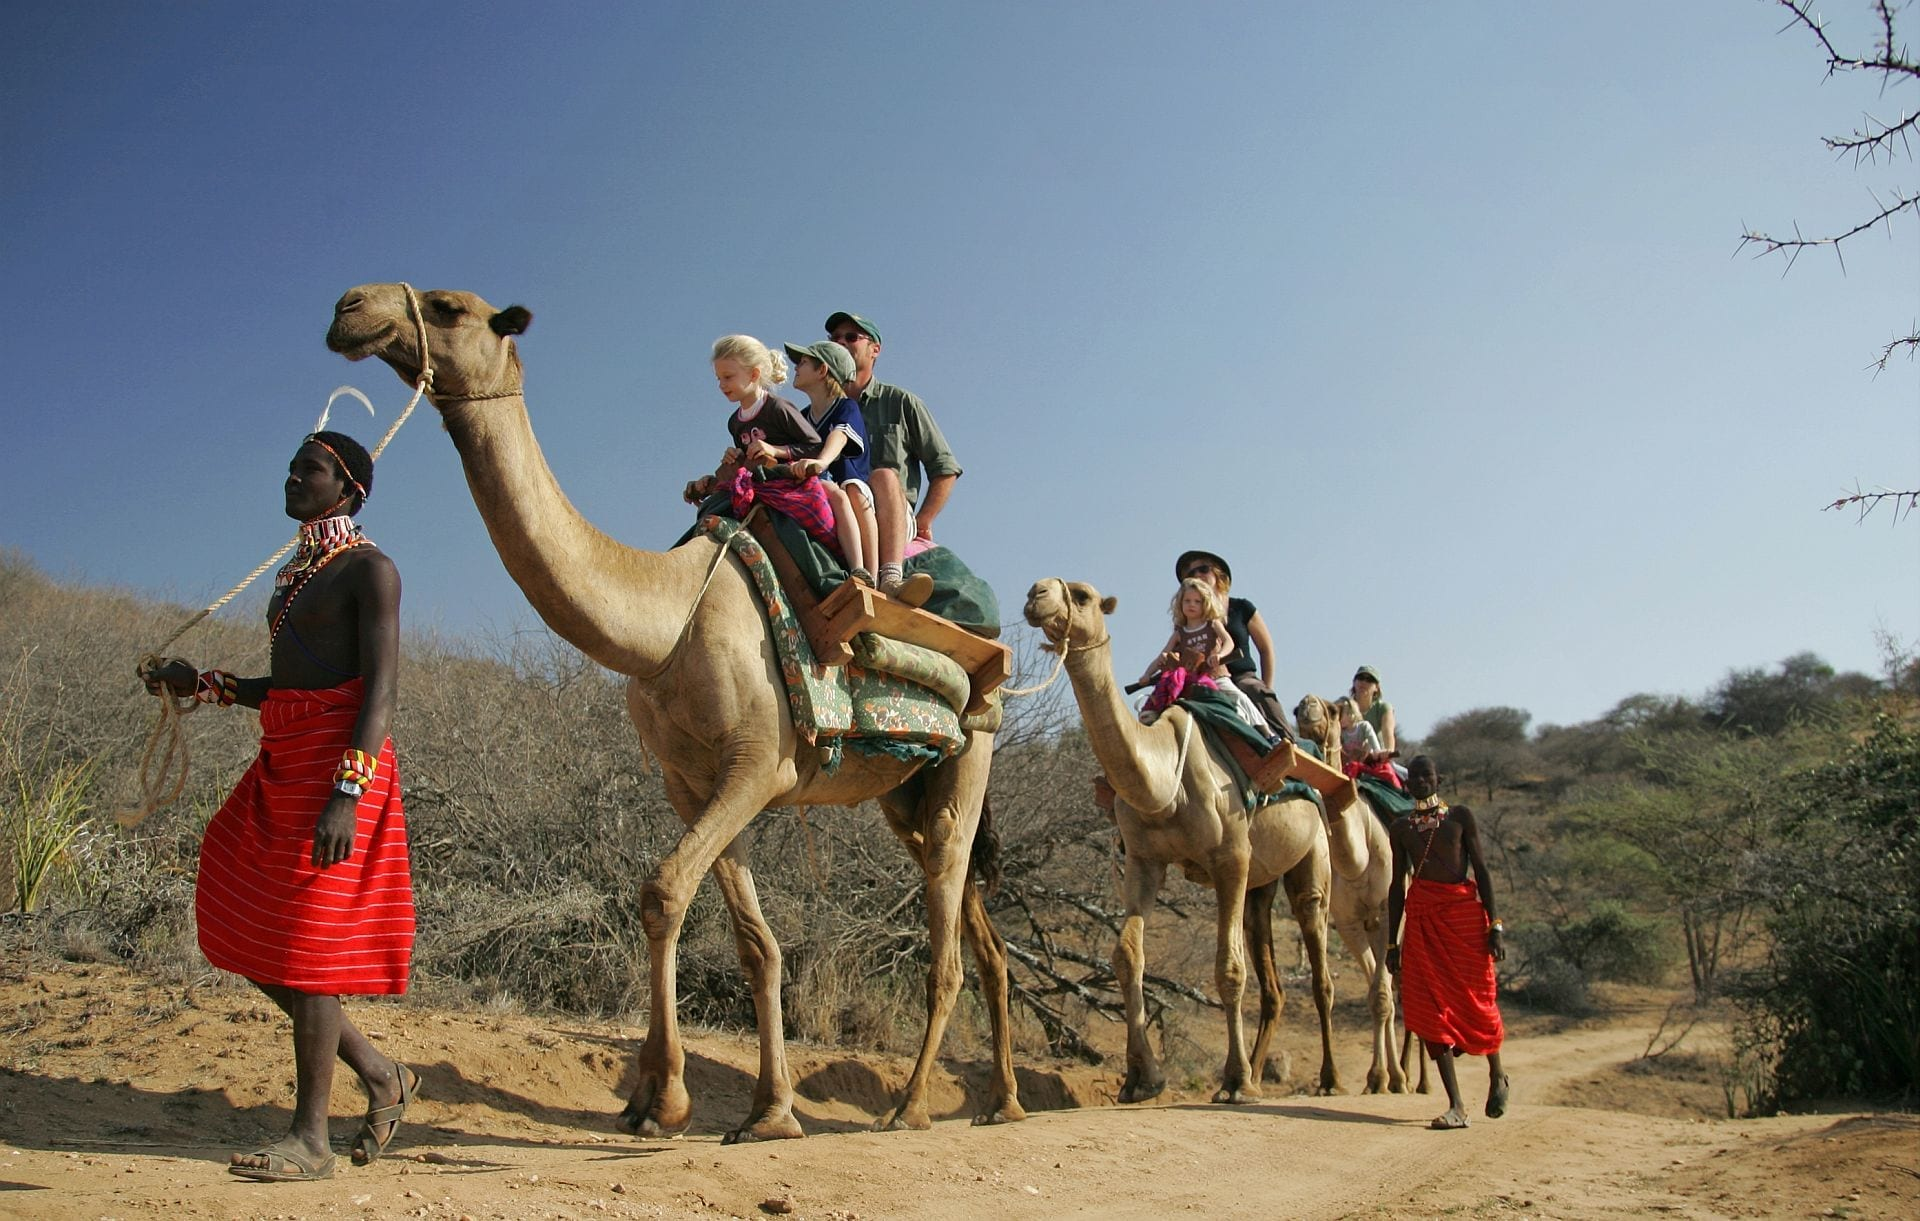 Family adventure safaris & holidays in Africa